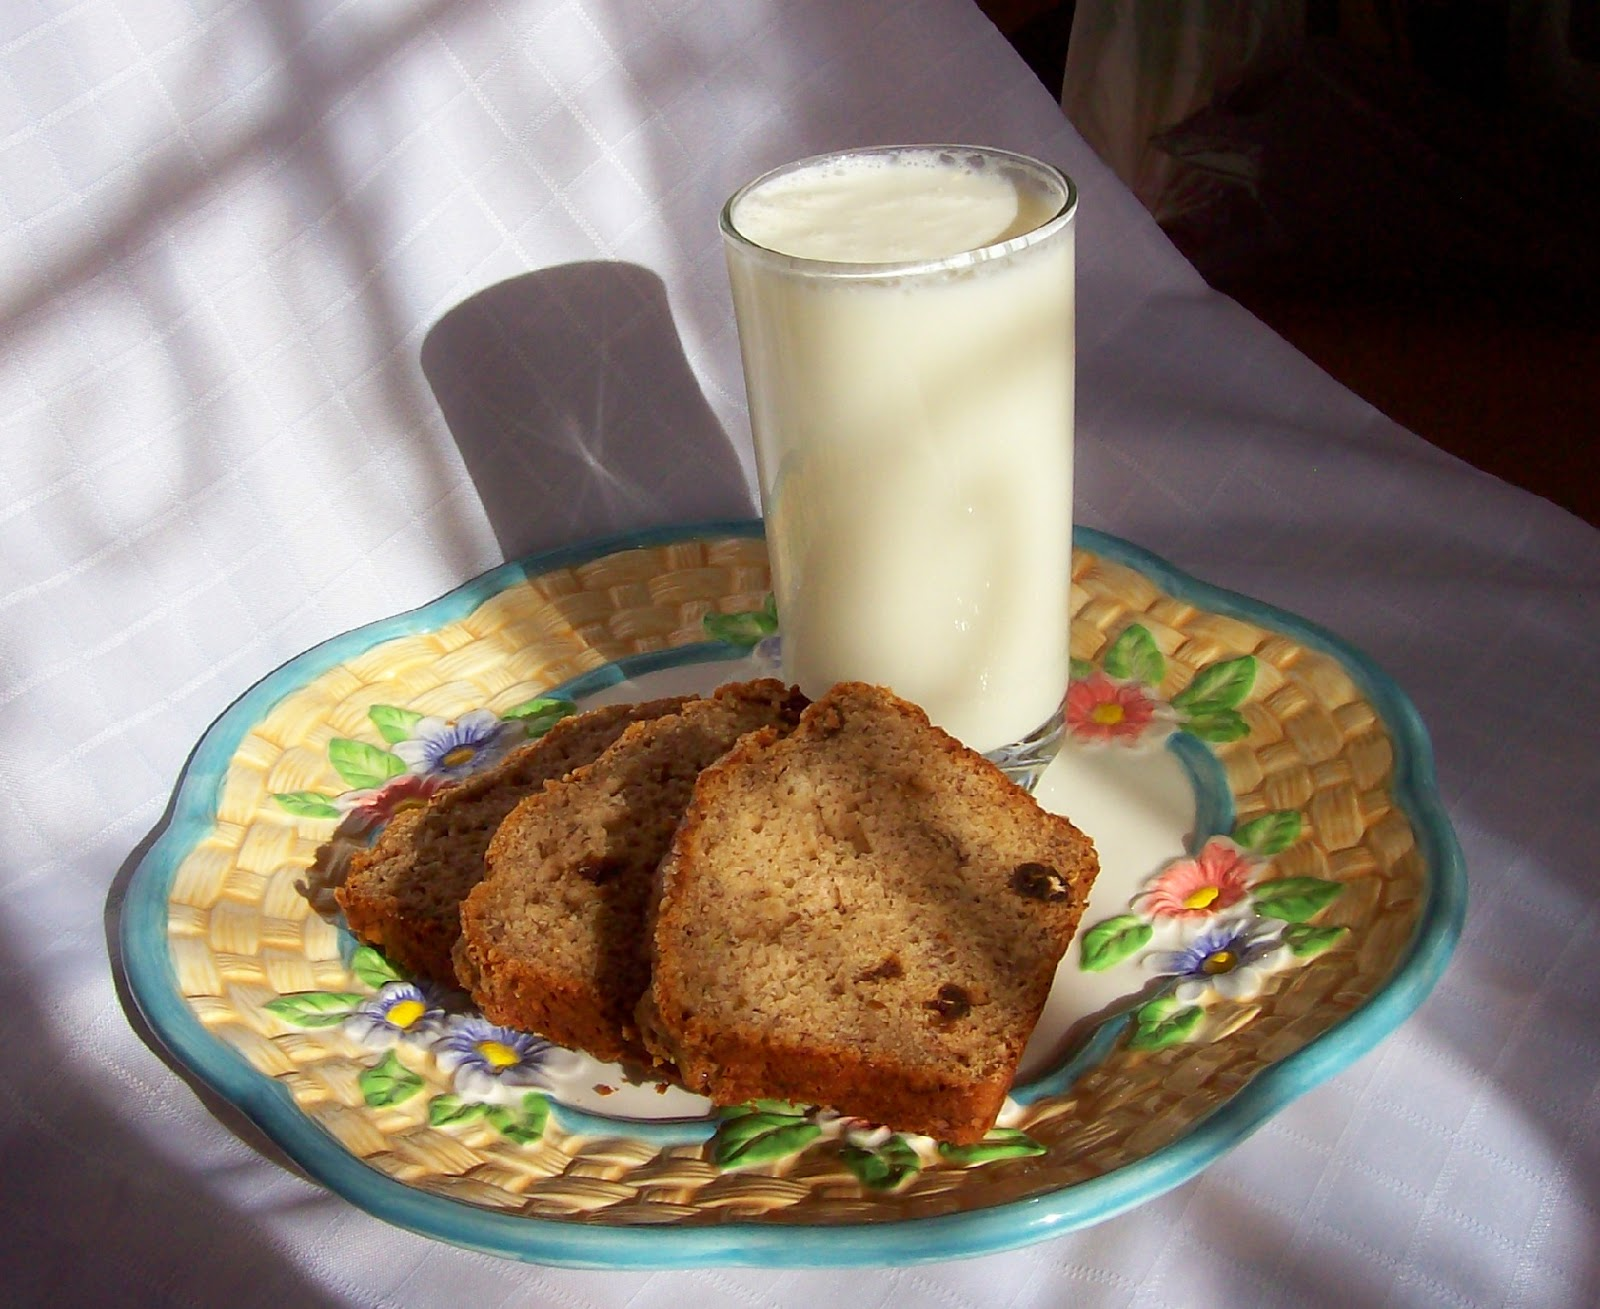 Sliced Banana Date Bread with a tall glass of milk.